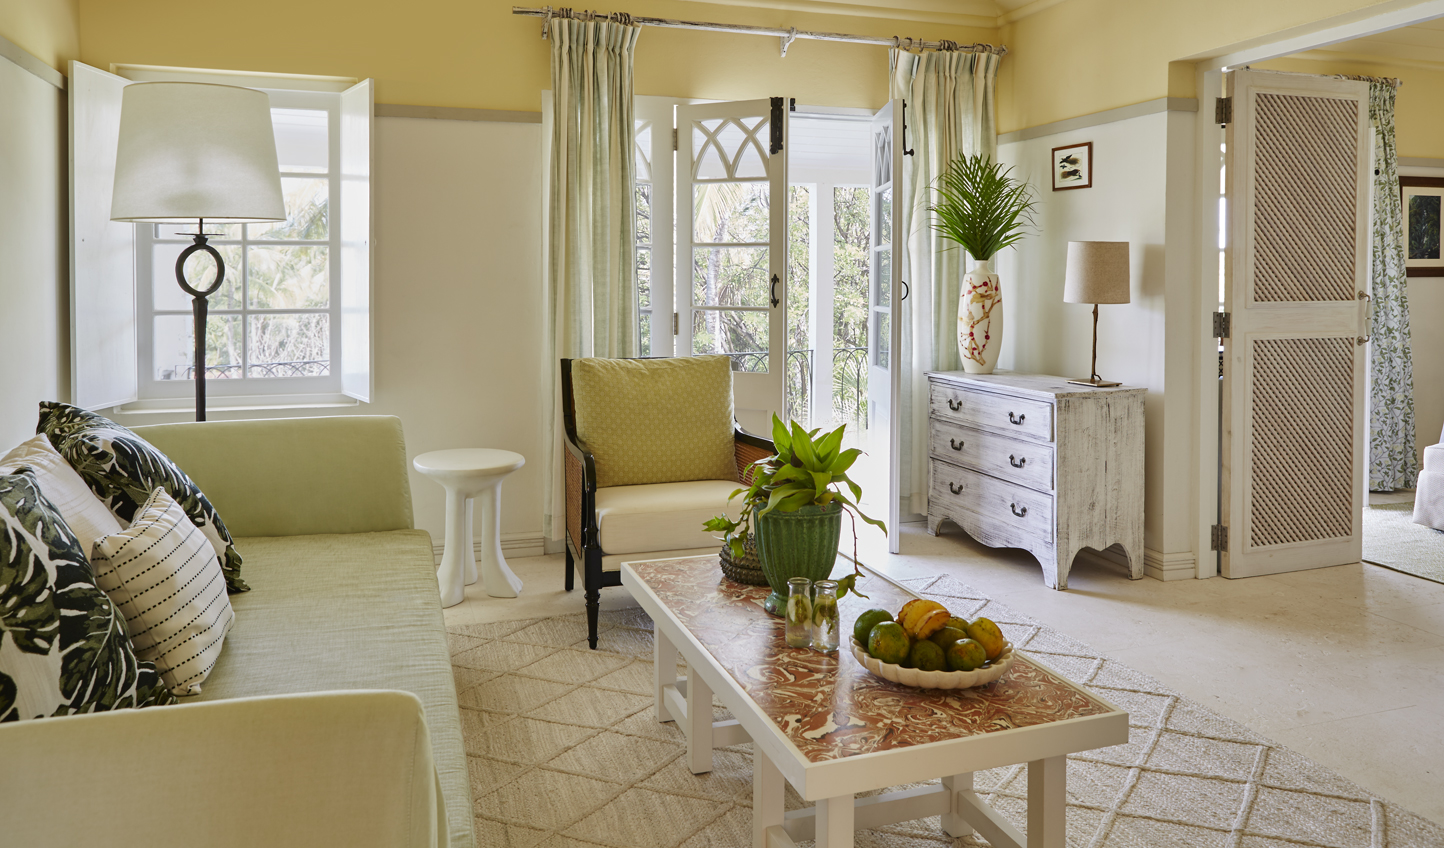 Beautiful Caribbean decor in your suite